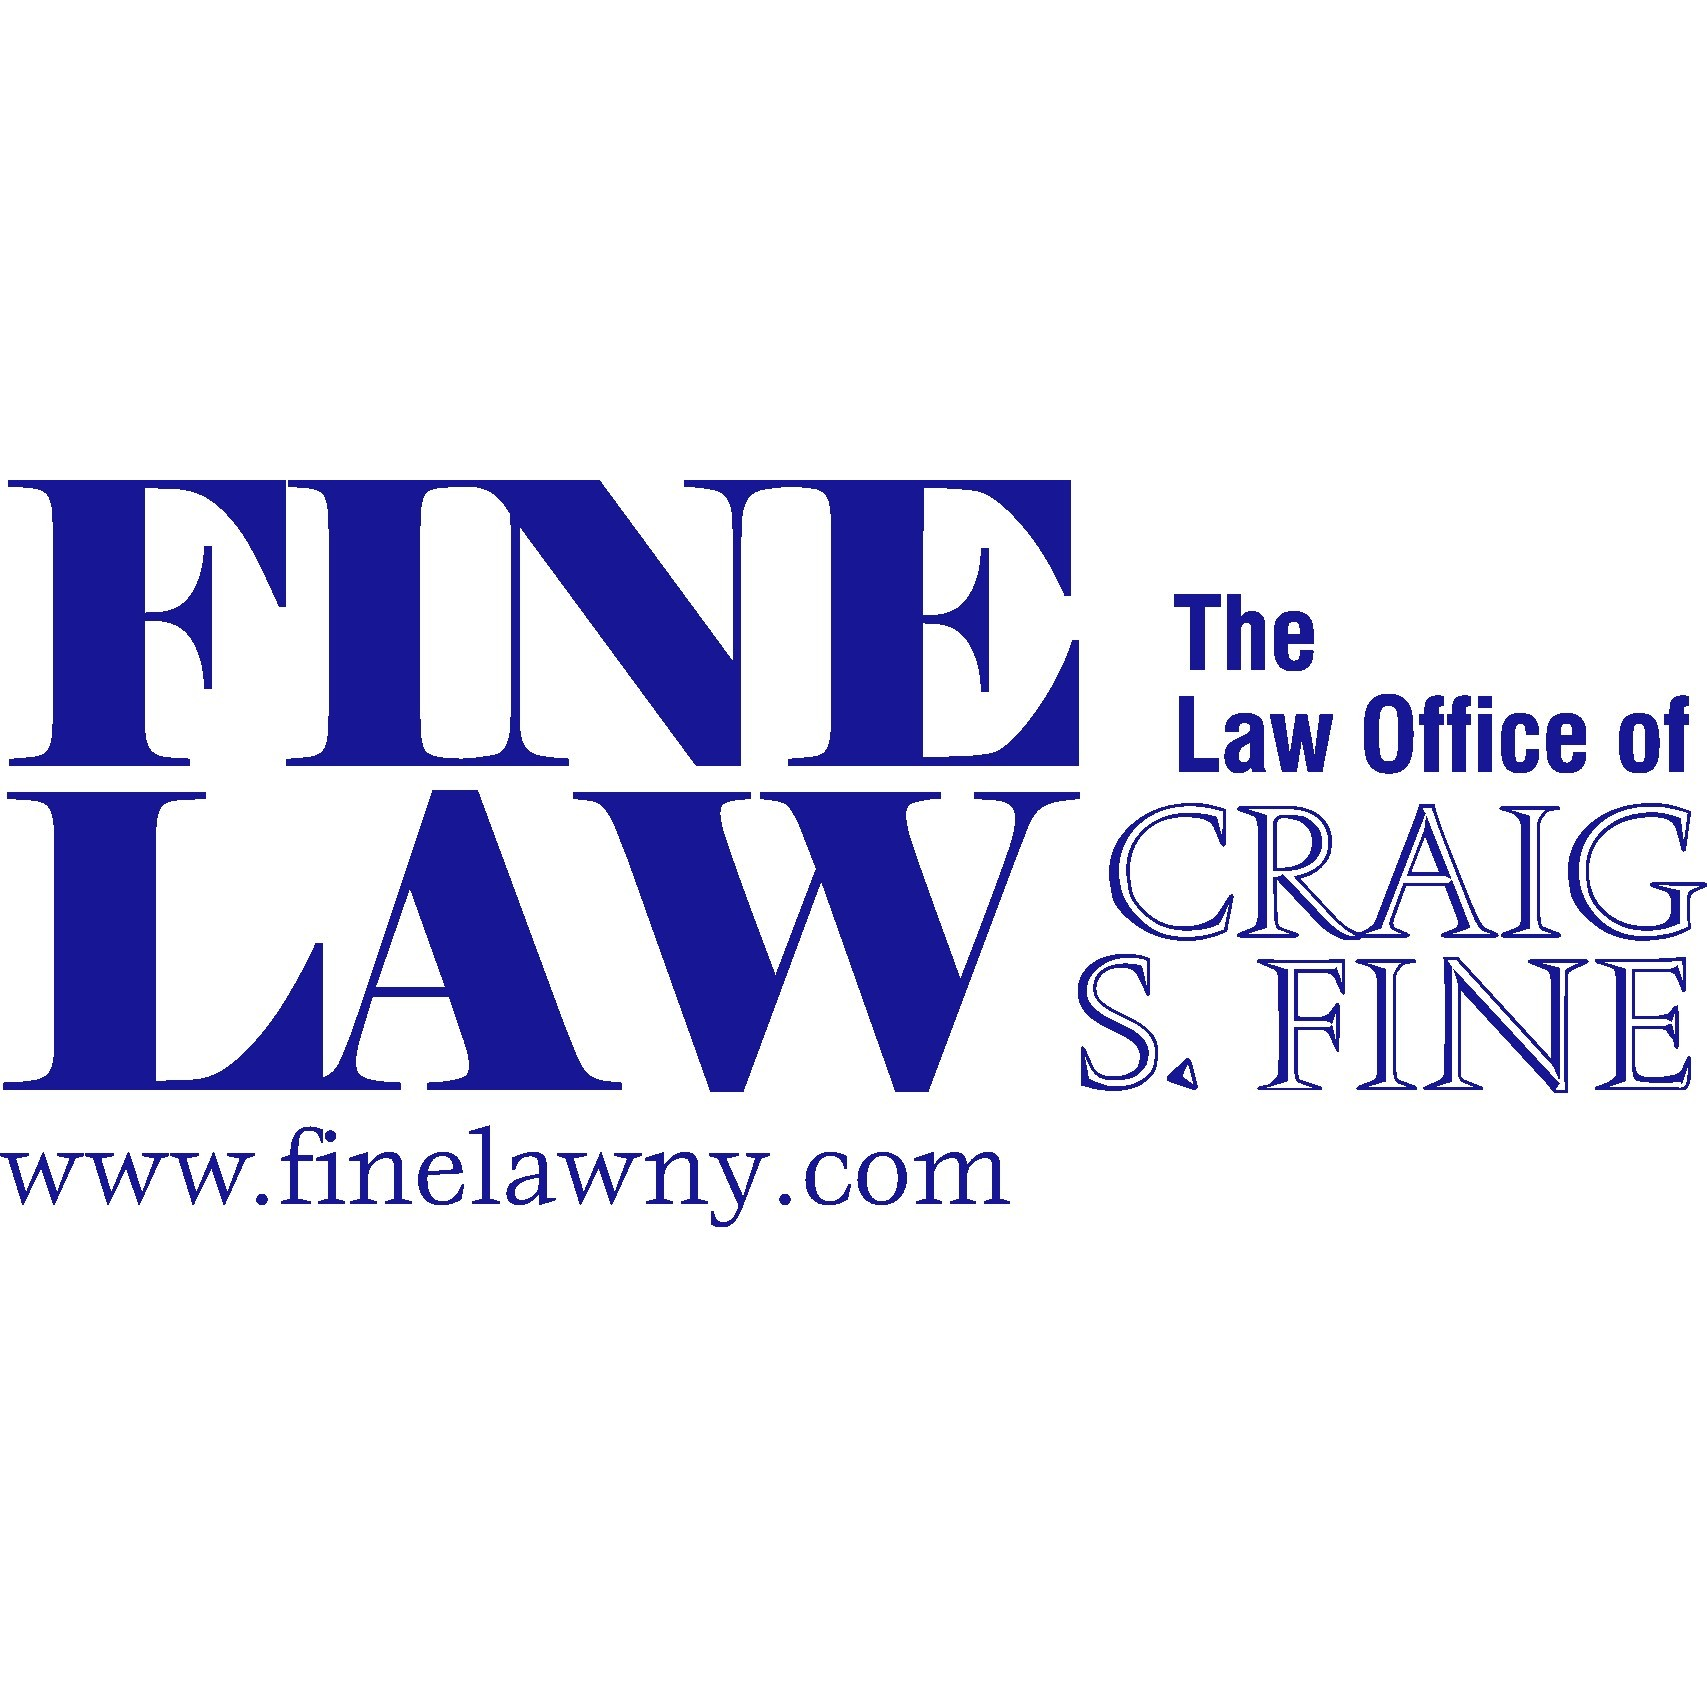 The Law Office of Craig S. Fine - Monticello, NY - Attorneys